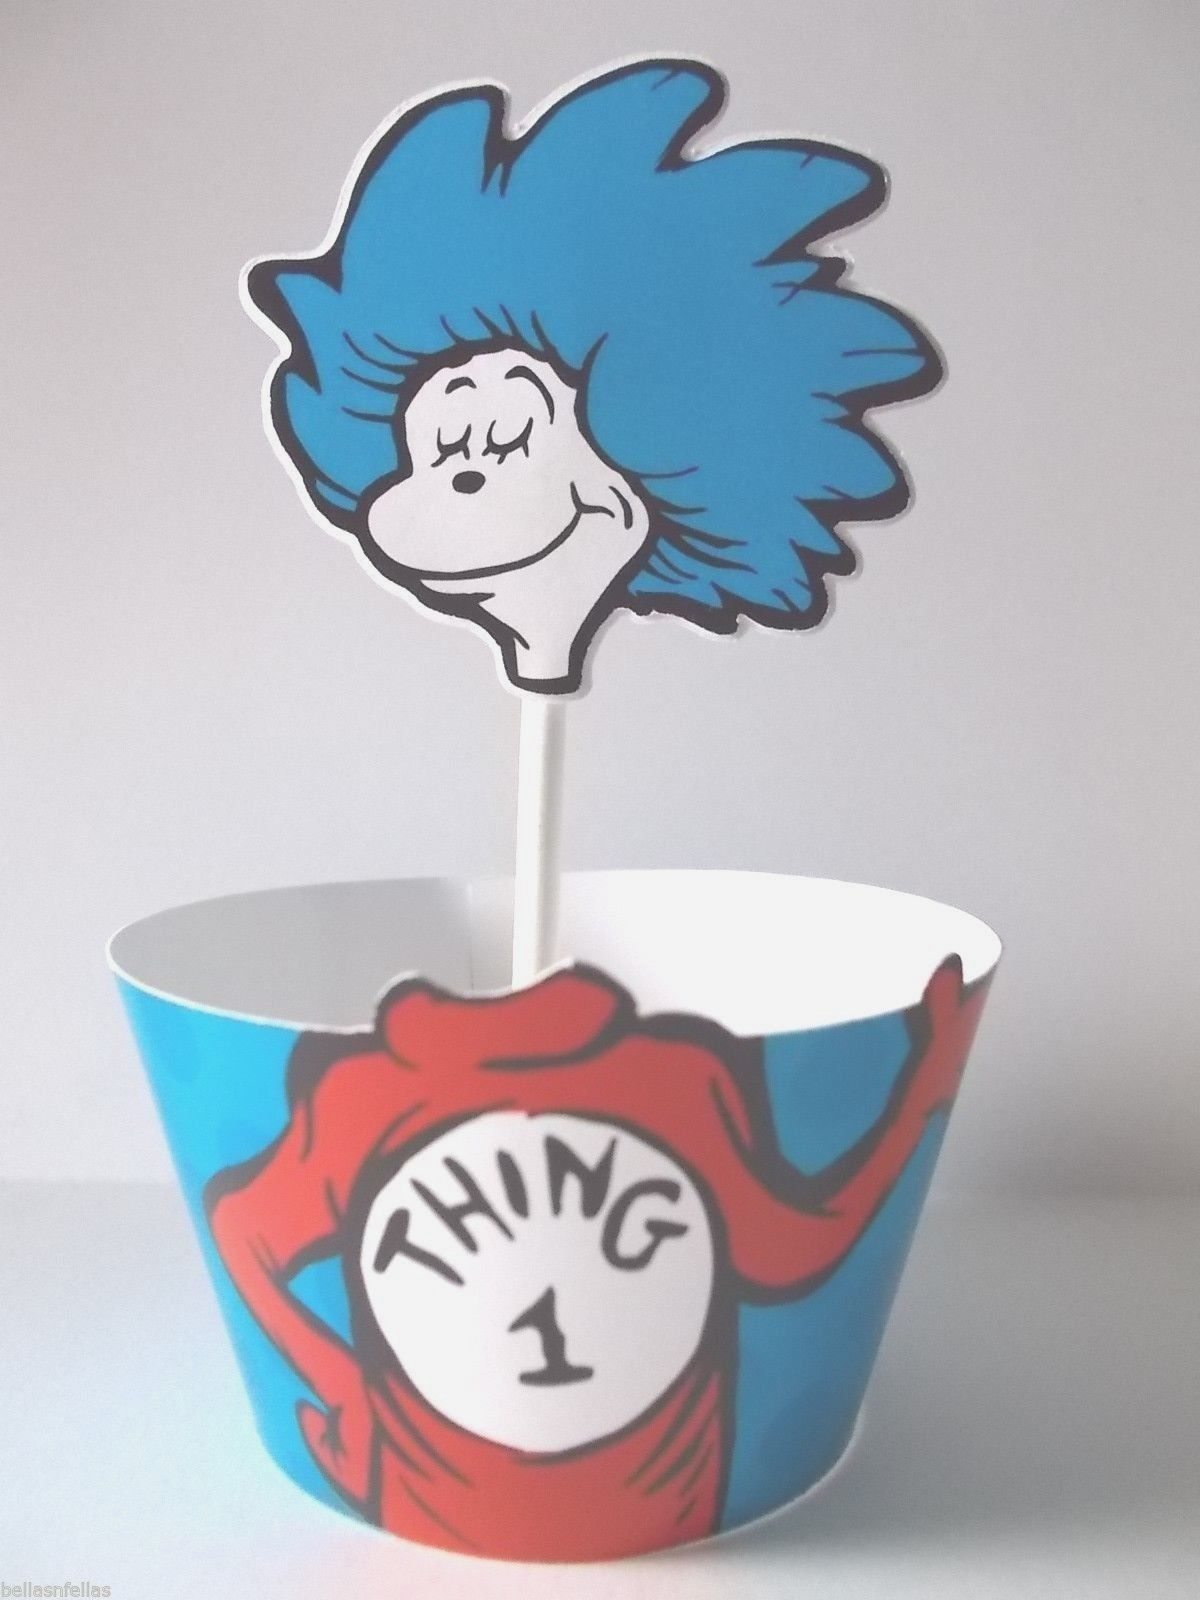 THING 1 & THING 2 PARTY IMAGES